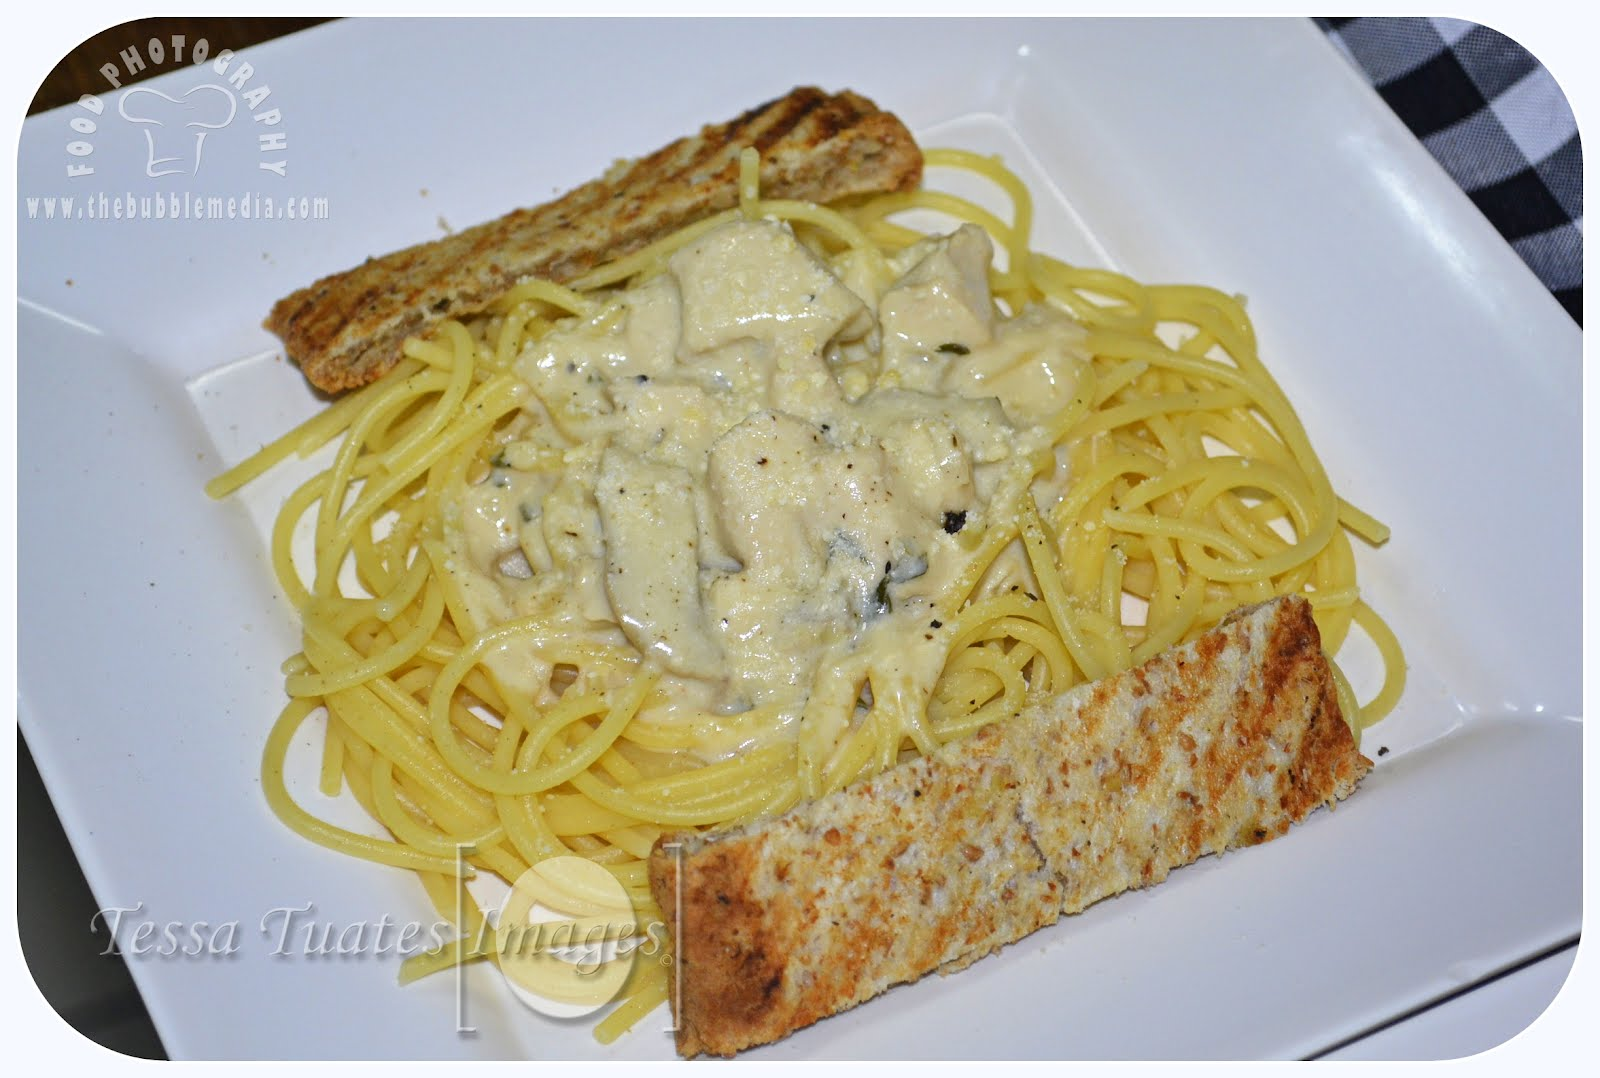 Chicken Alfredo http://www.thebubblemedia.com